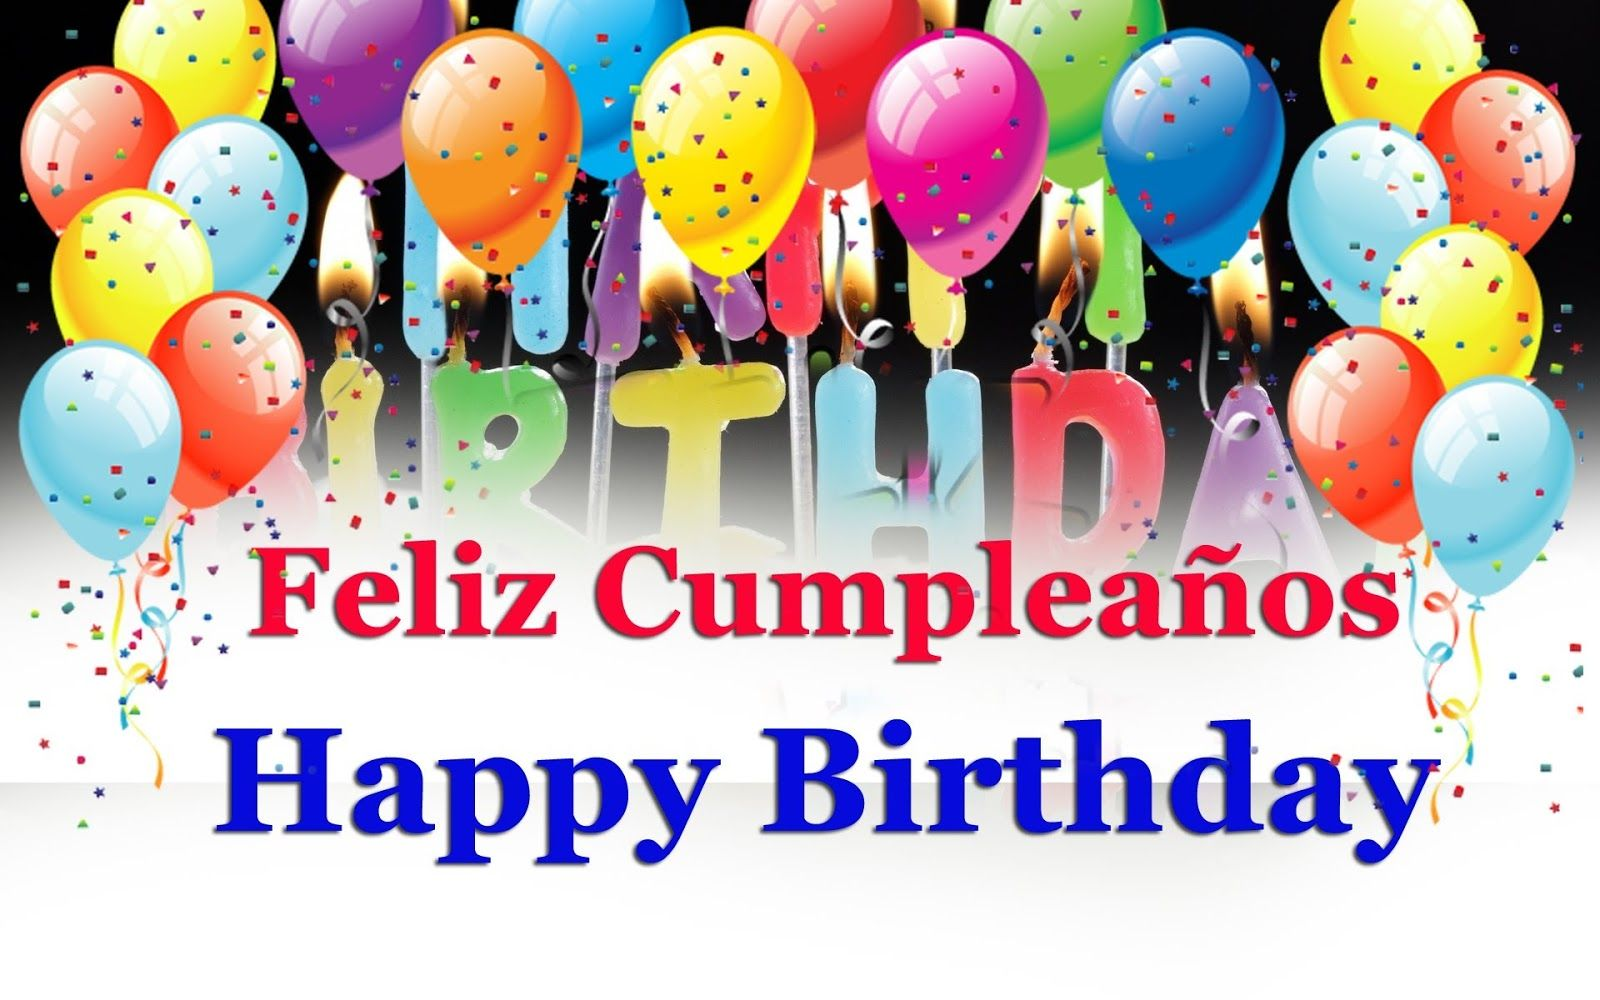 Latest Birthday Wishes In Spanish Quotes Wishes Messages Birthday Wishes B Spanish Birthday Wishes Happy Birthday Wishes Spanish Late Birthday Wishes